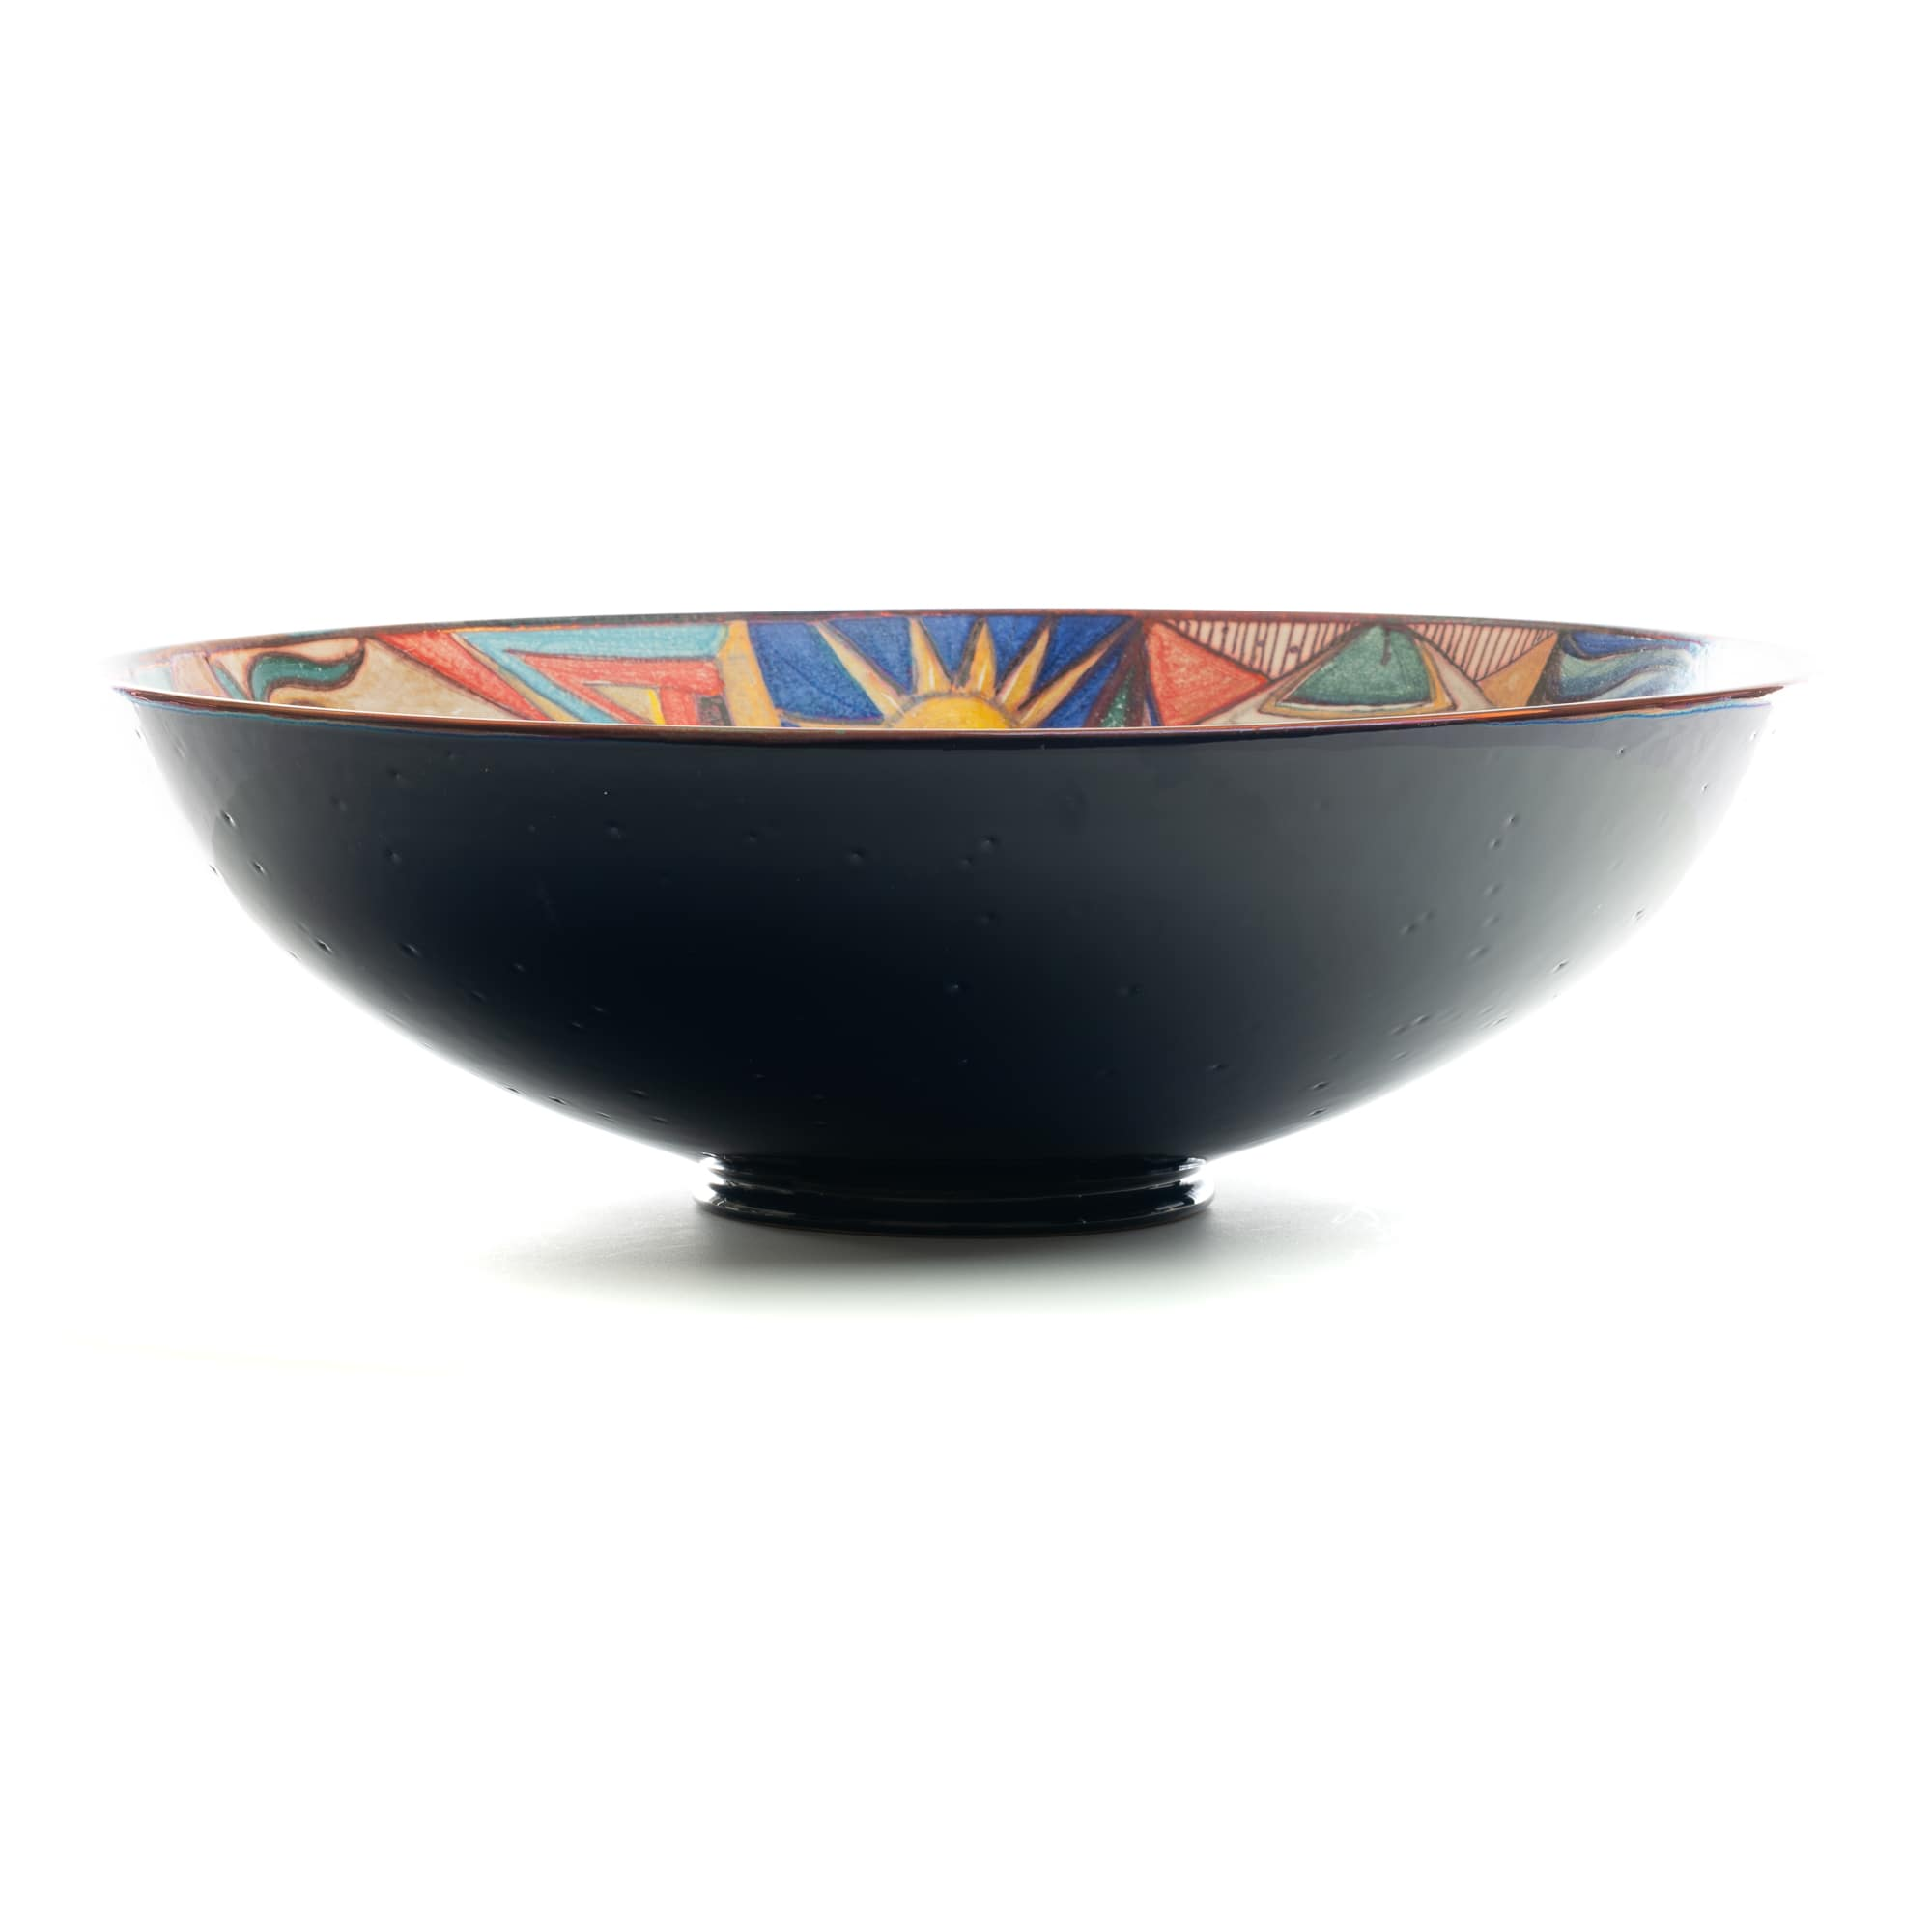 "Vignoli 16"" Large Centerpiece Bowl Abstract Art Deco"